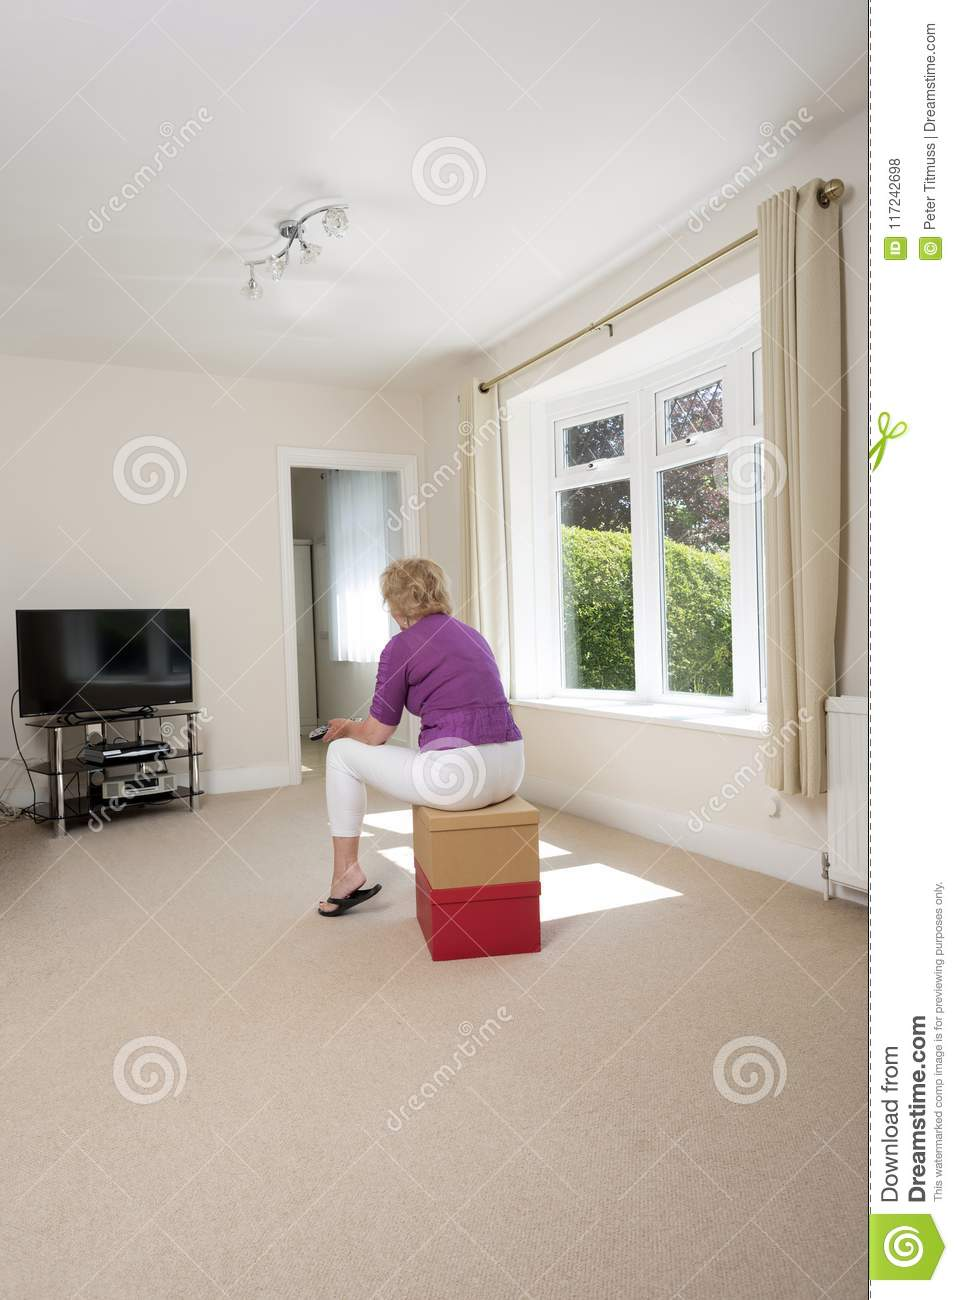 Woman Watching Tv In An Empty Room Stock Photo Image Of White Watching 117242698